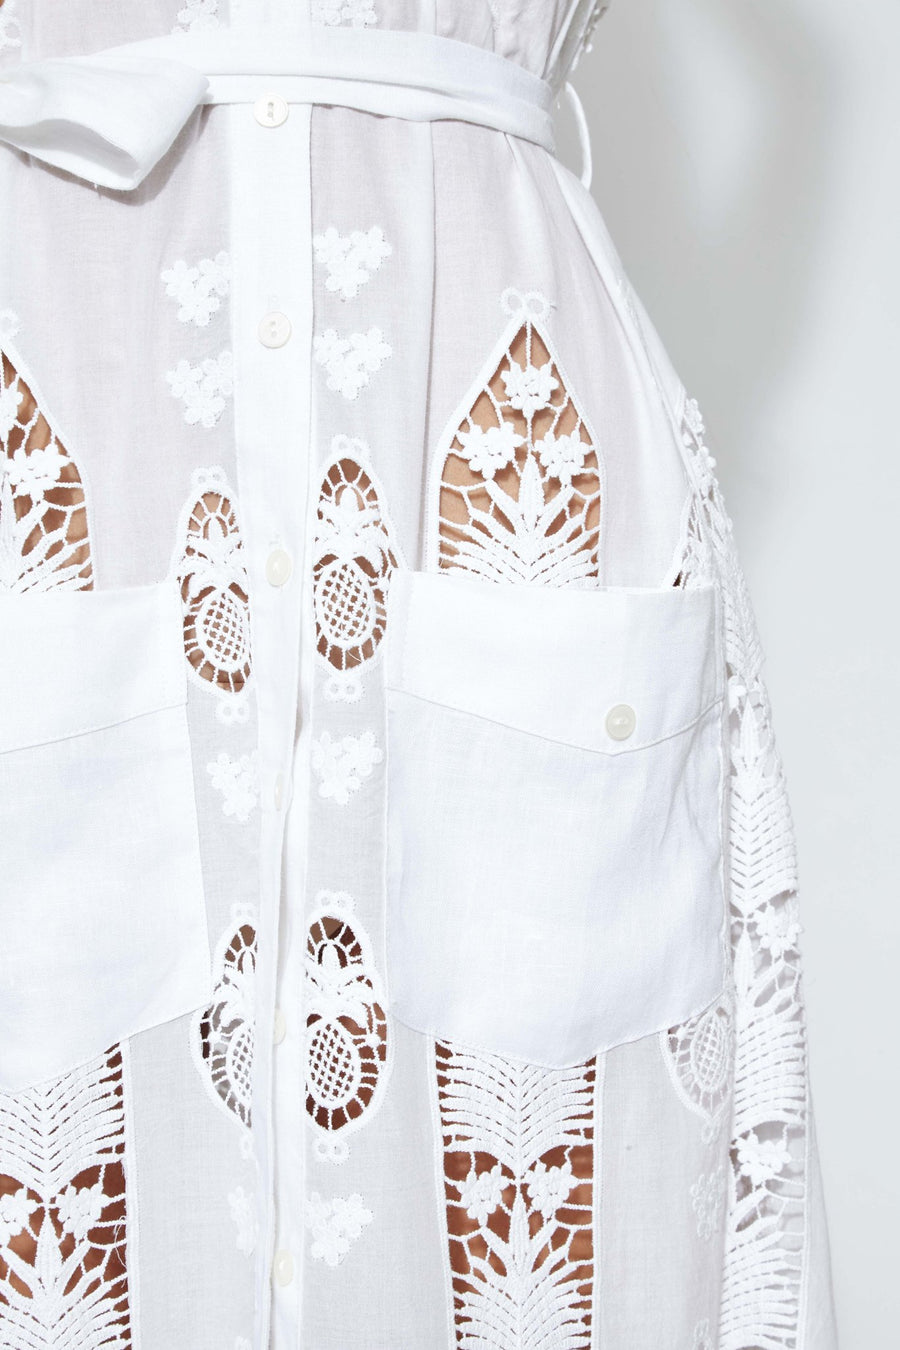 This is a detail photo of square pockets on the front of a white cotton embroidered dress. The pockets fall below the waist and lace design shows small flowers and pineapples.